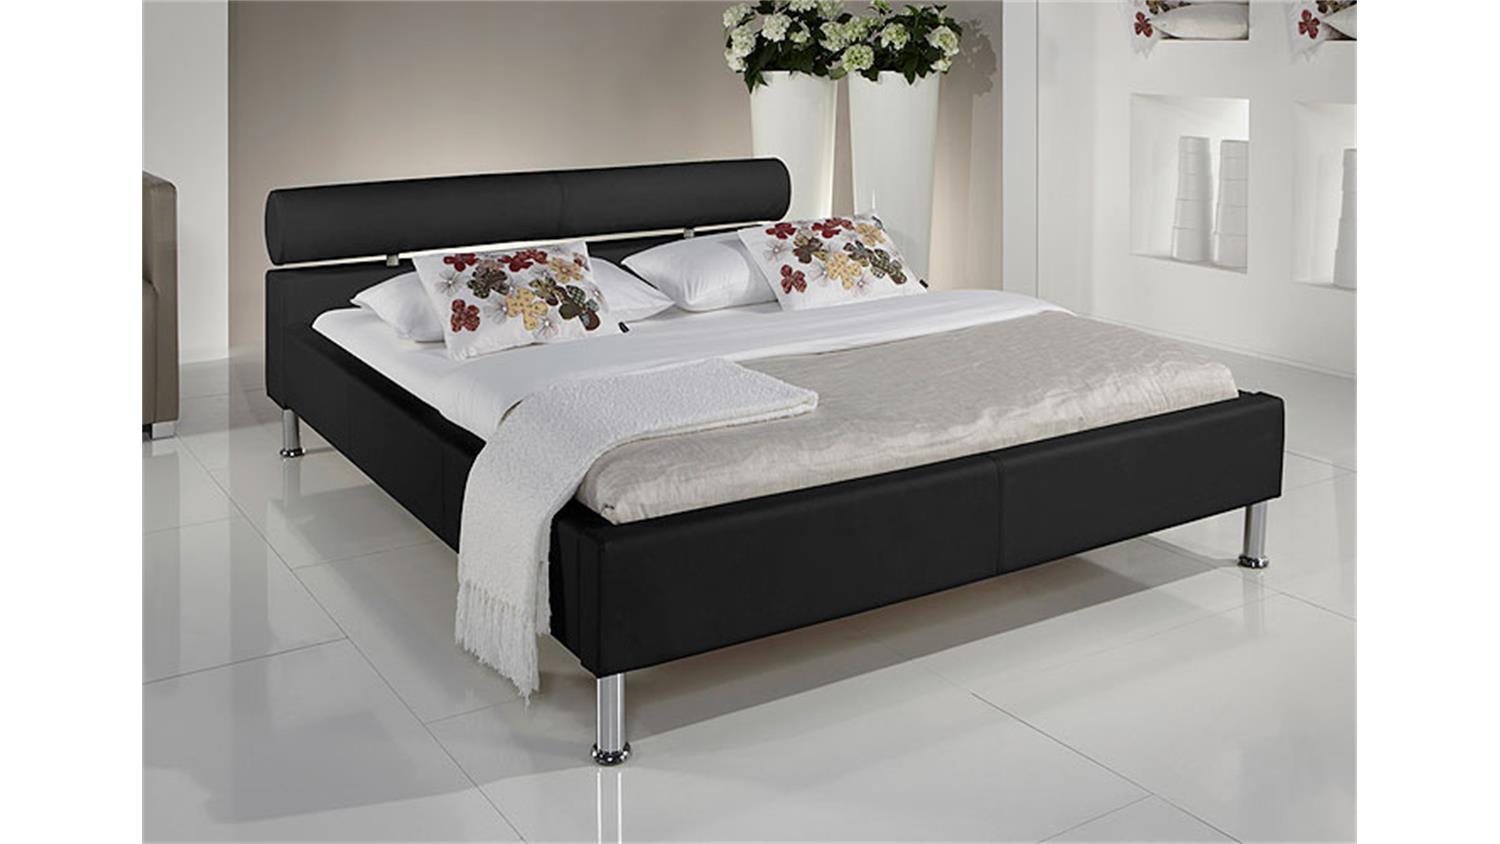 polsterbett manelli designer bett in schwarz 140x200 cm. Black Bedroom Furniture Sets. Home Design Ideas